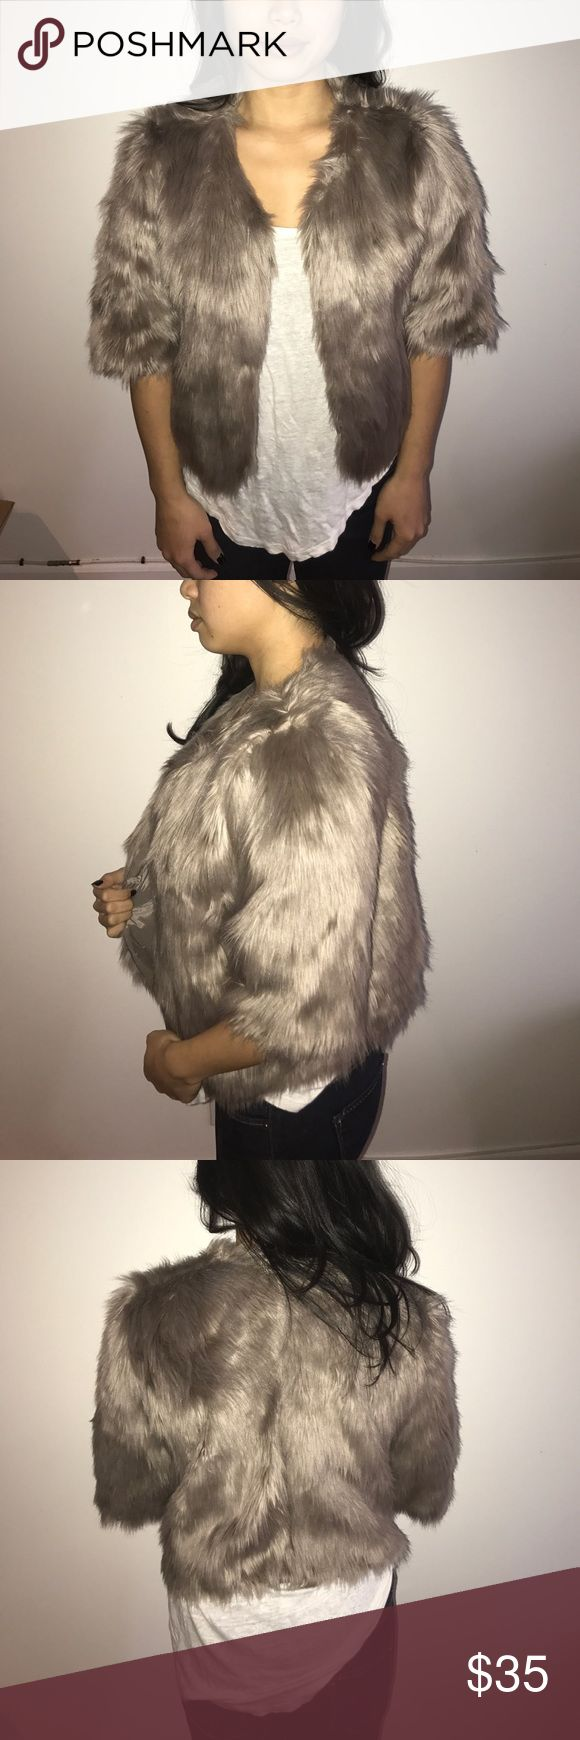 BCBG faux fur crop jacket BCBGeneratiom faux fur cropped jacket with closure in taupe BCBGeneration Jackets & Coats